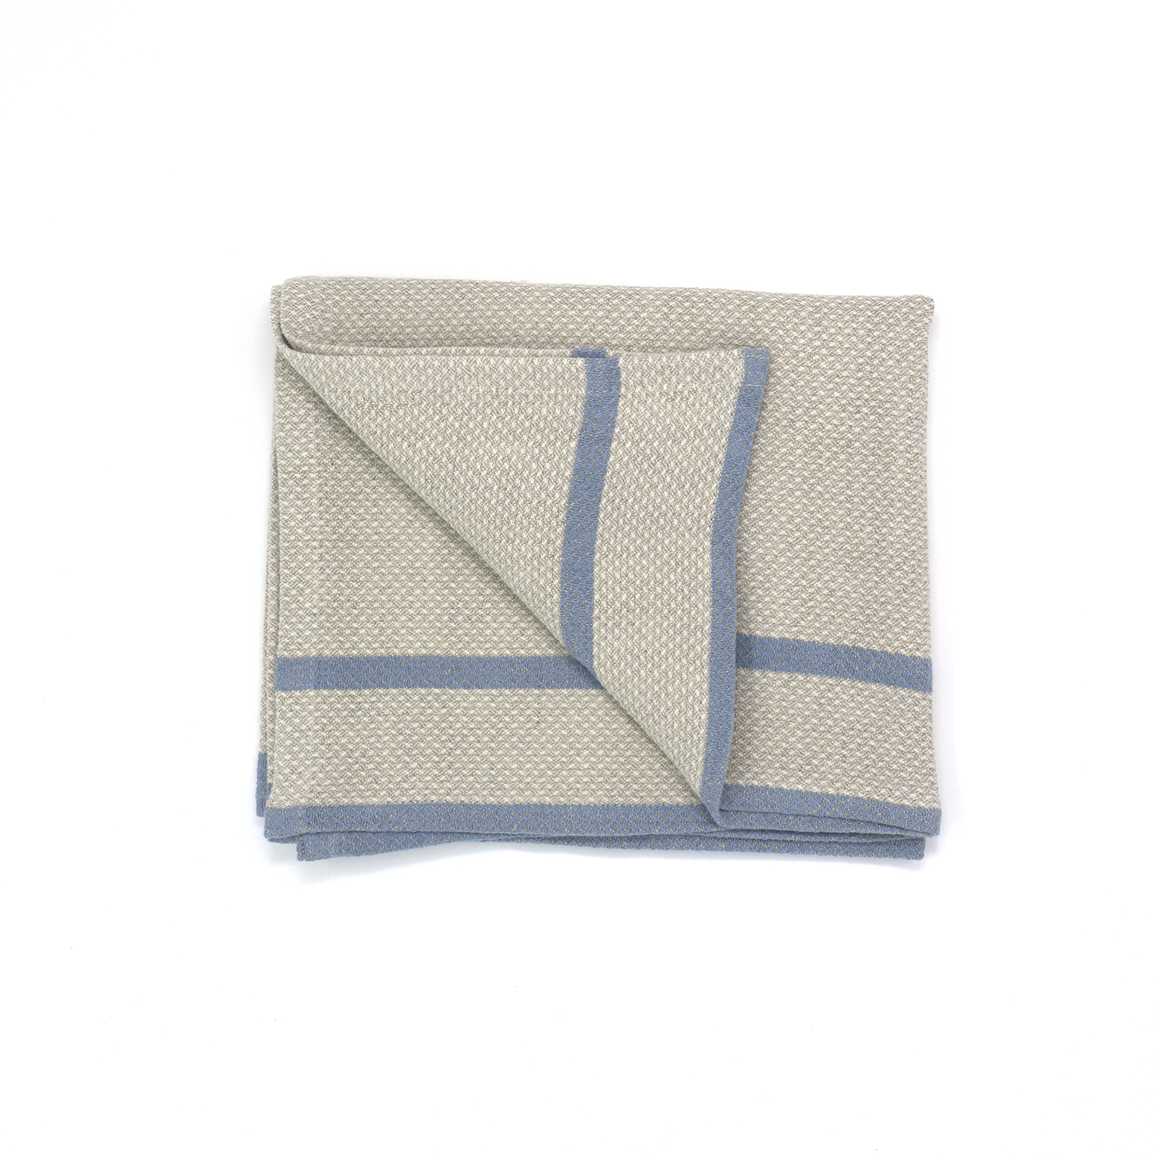 mungo huck hand towel - blue on natural